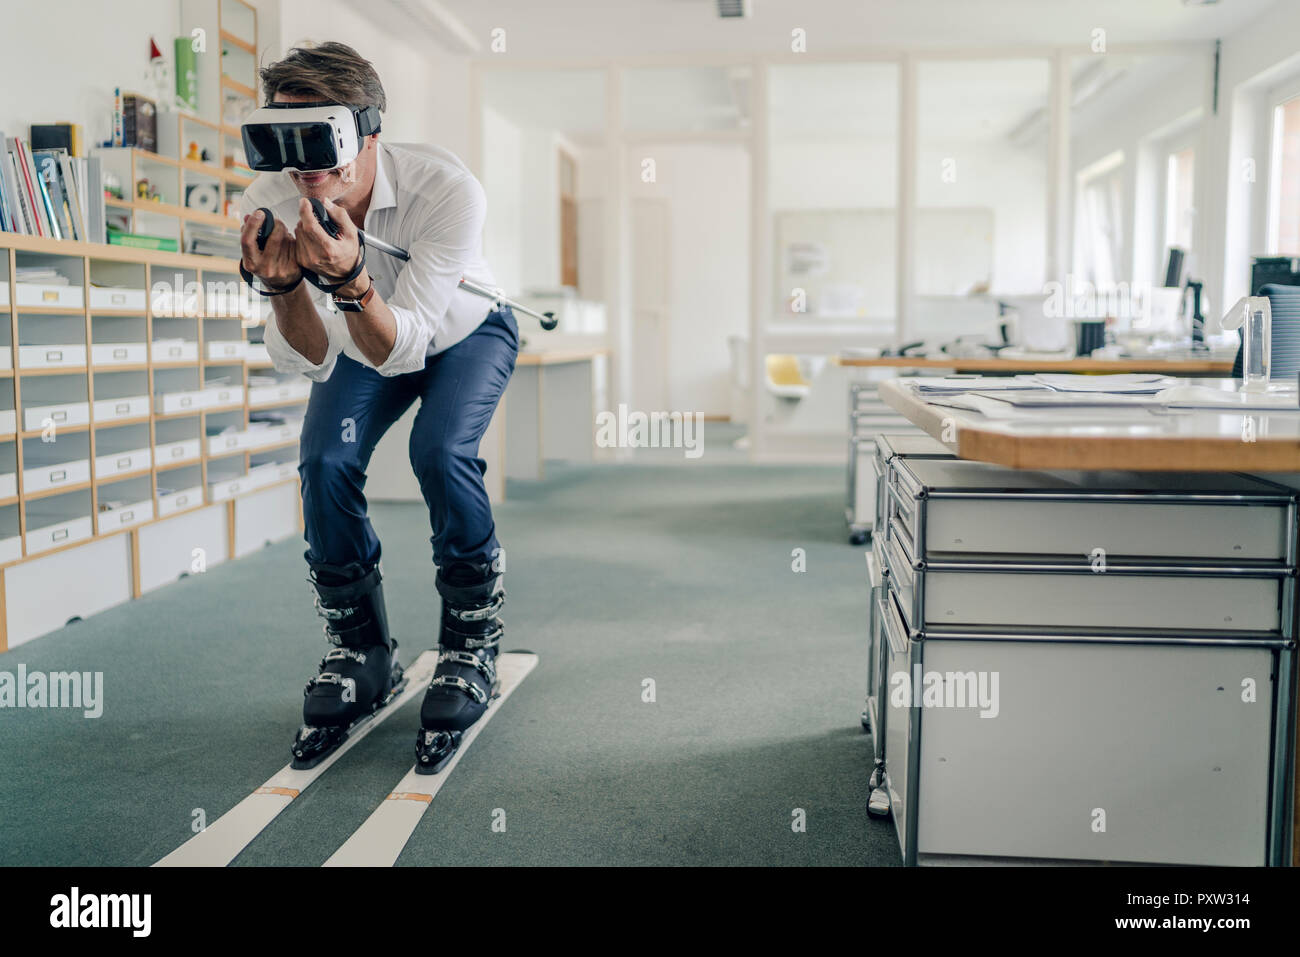 Businessman skiing in office, using VR glasses - Stock Image